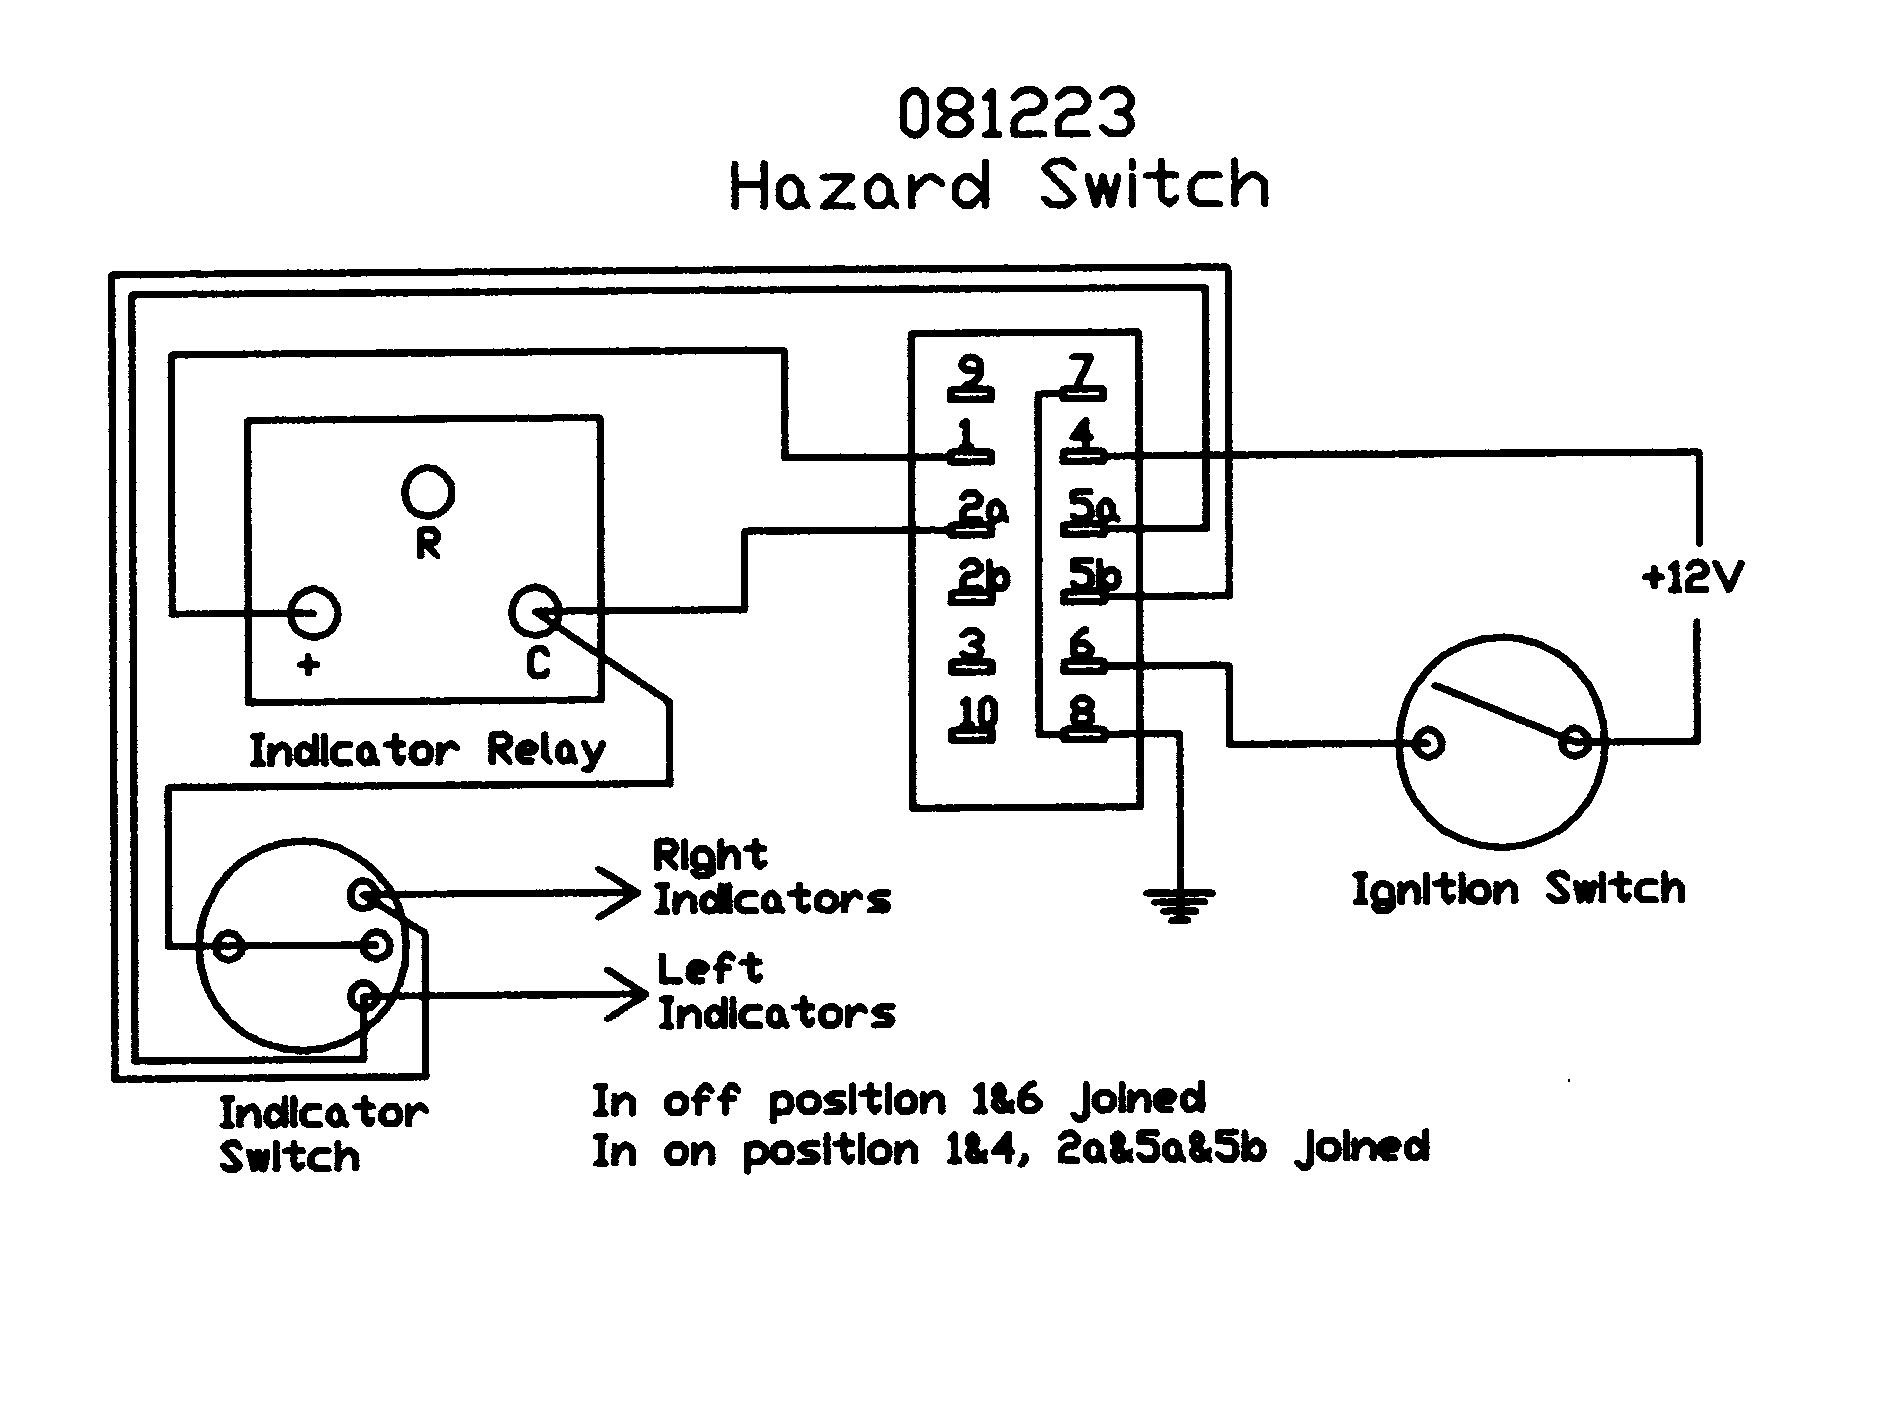 Bard Wiring Diagrams Wall Mount Diagram 30 Images 081223 Mounted Air Conditioner Problems Buckeyebride Com At Highcare